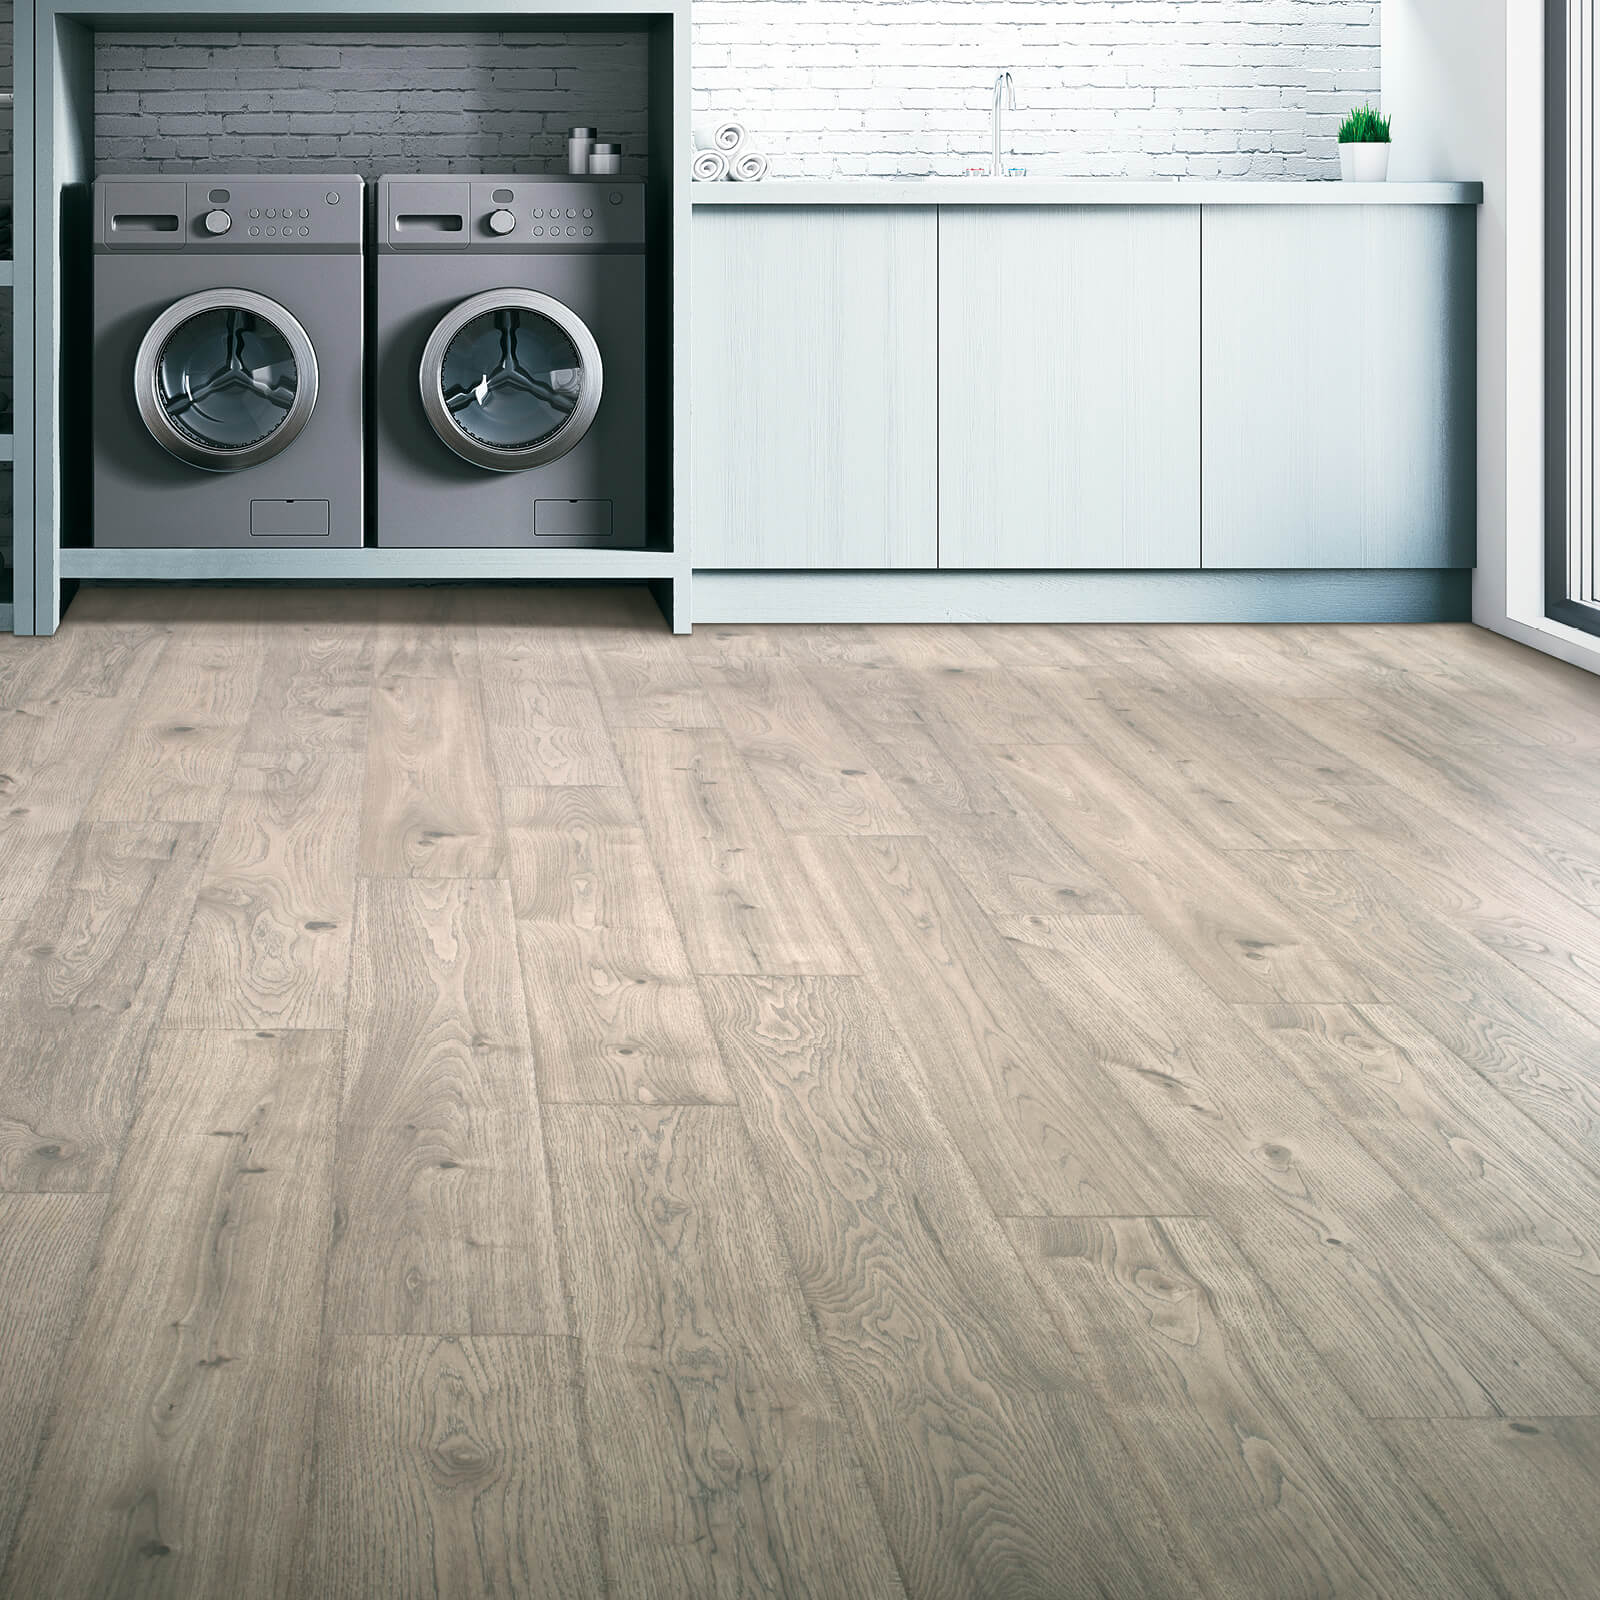 Revwood flooring in laundry room | Hughes Floor Coverings Inc